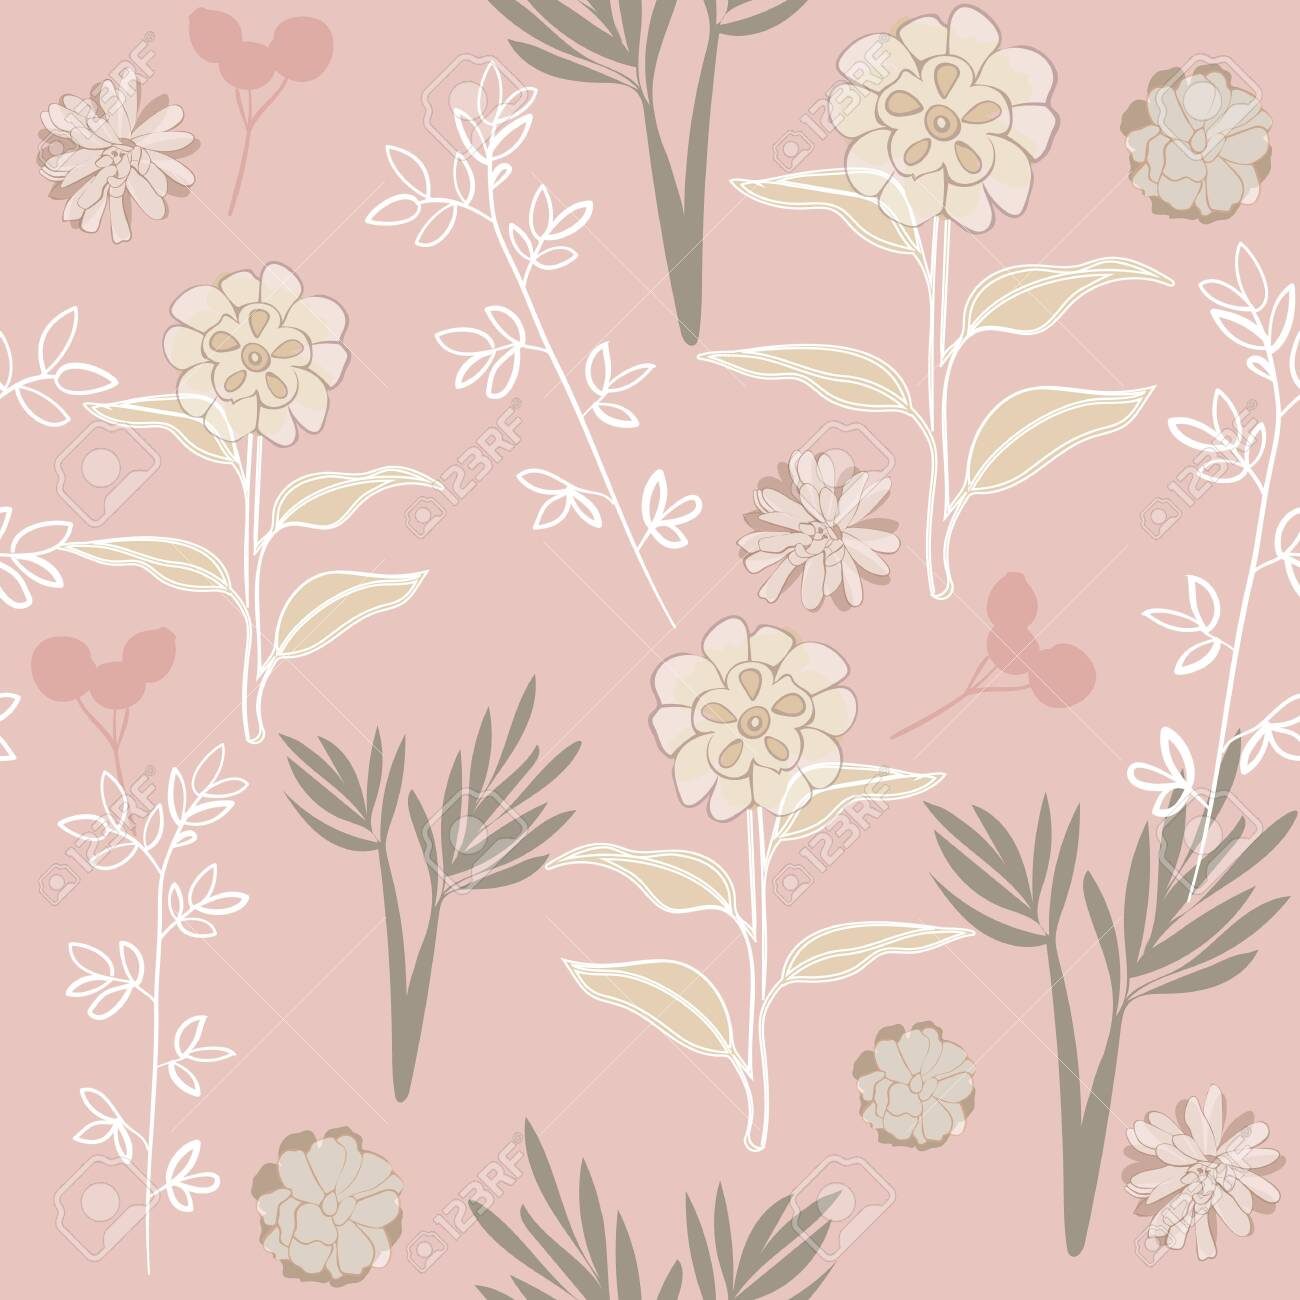 Blush Floral Seamless Repeat Pattern Vector Background Perfect